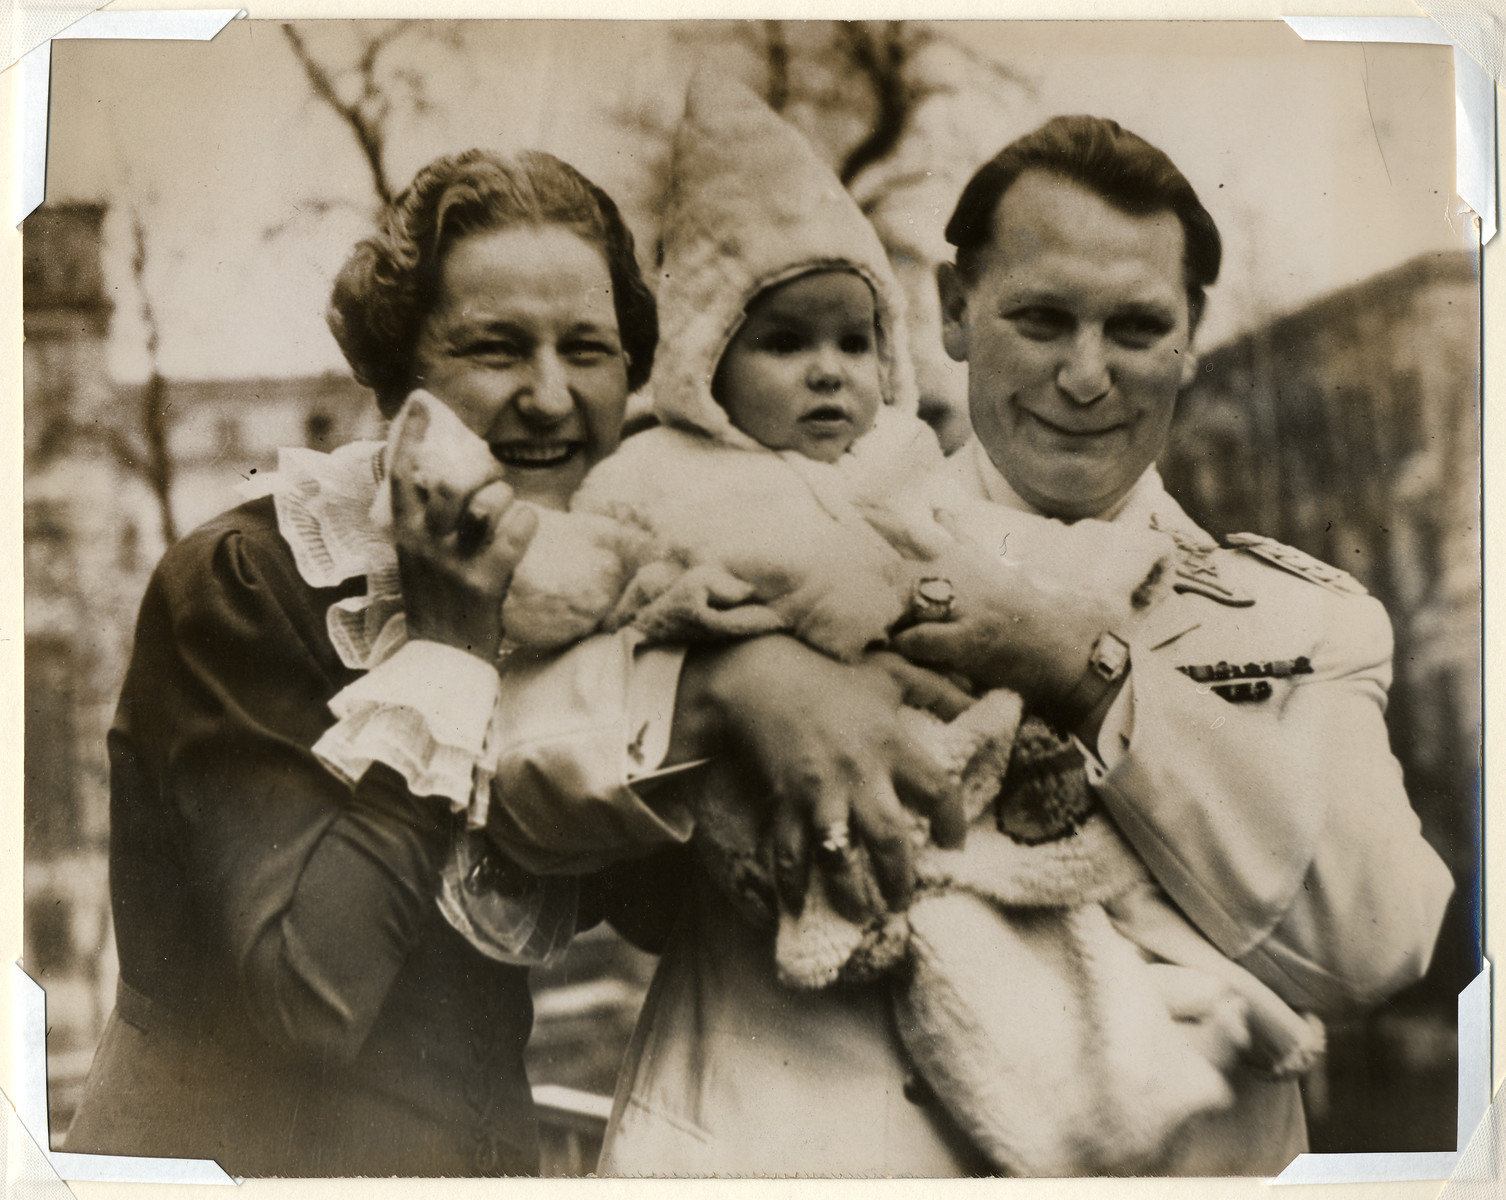 Herman Goering pictured with his daughter, Edda, and wife Emmy Sonnenmann Goering.